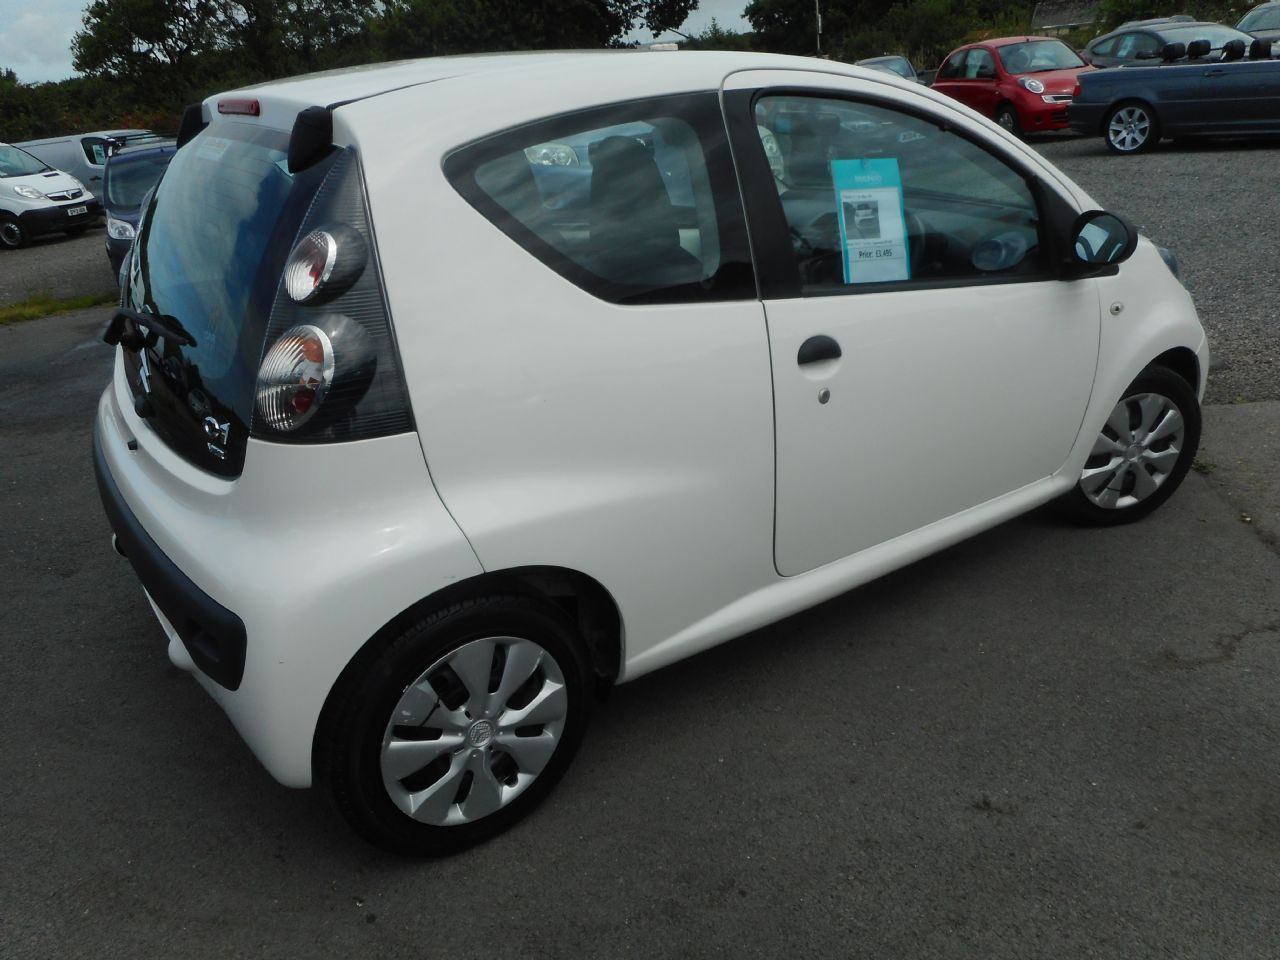 CITROEN C1 1.0i 68hp VTR (2011) - Picture 3